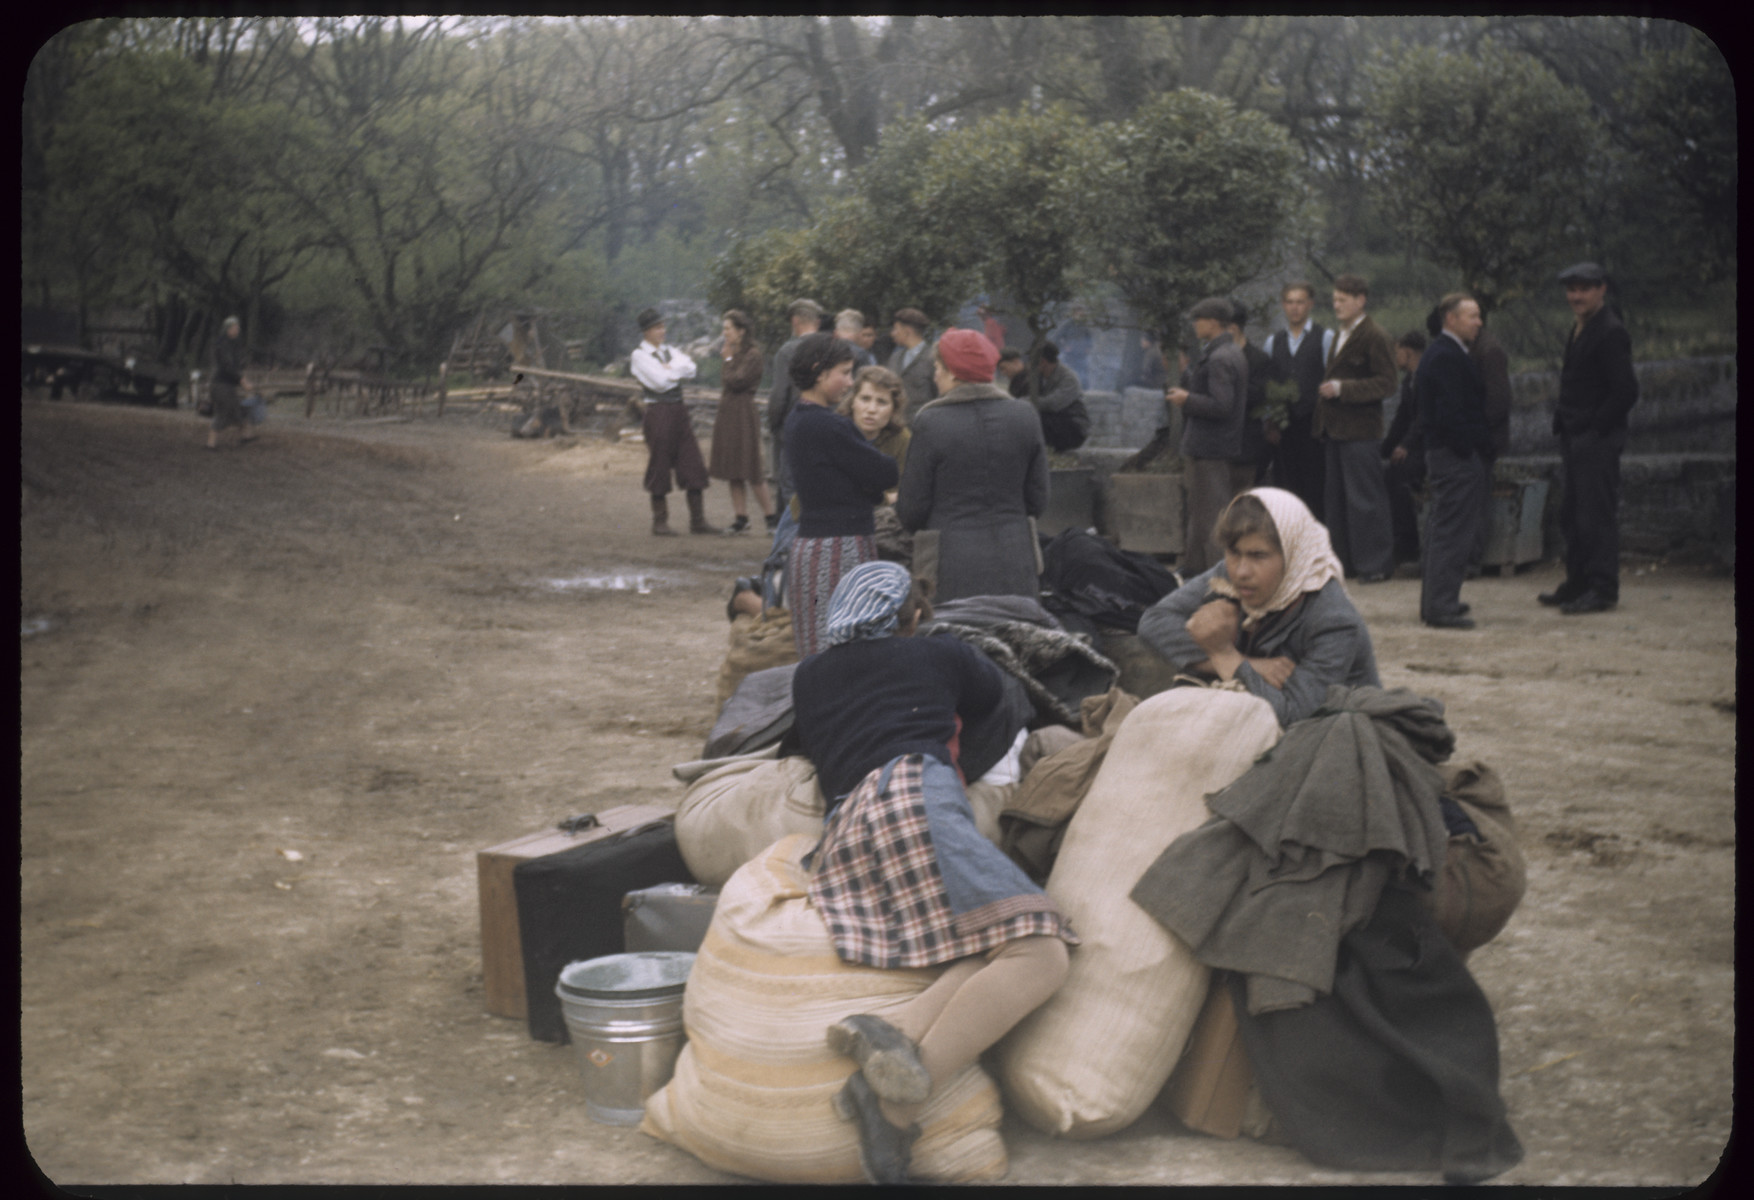 Displaced persons wait next to their suitcases and bundles.